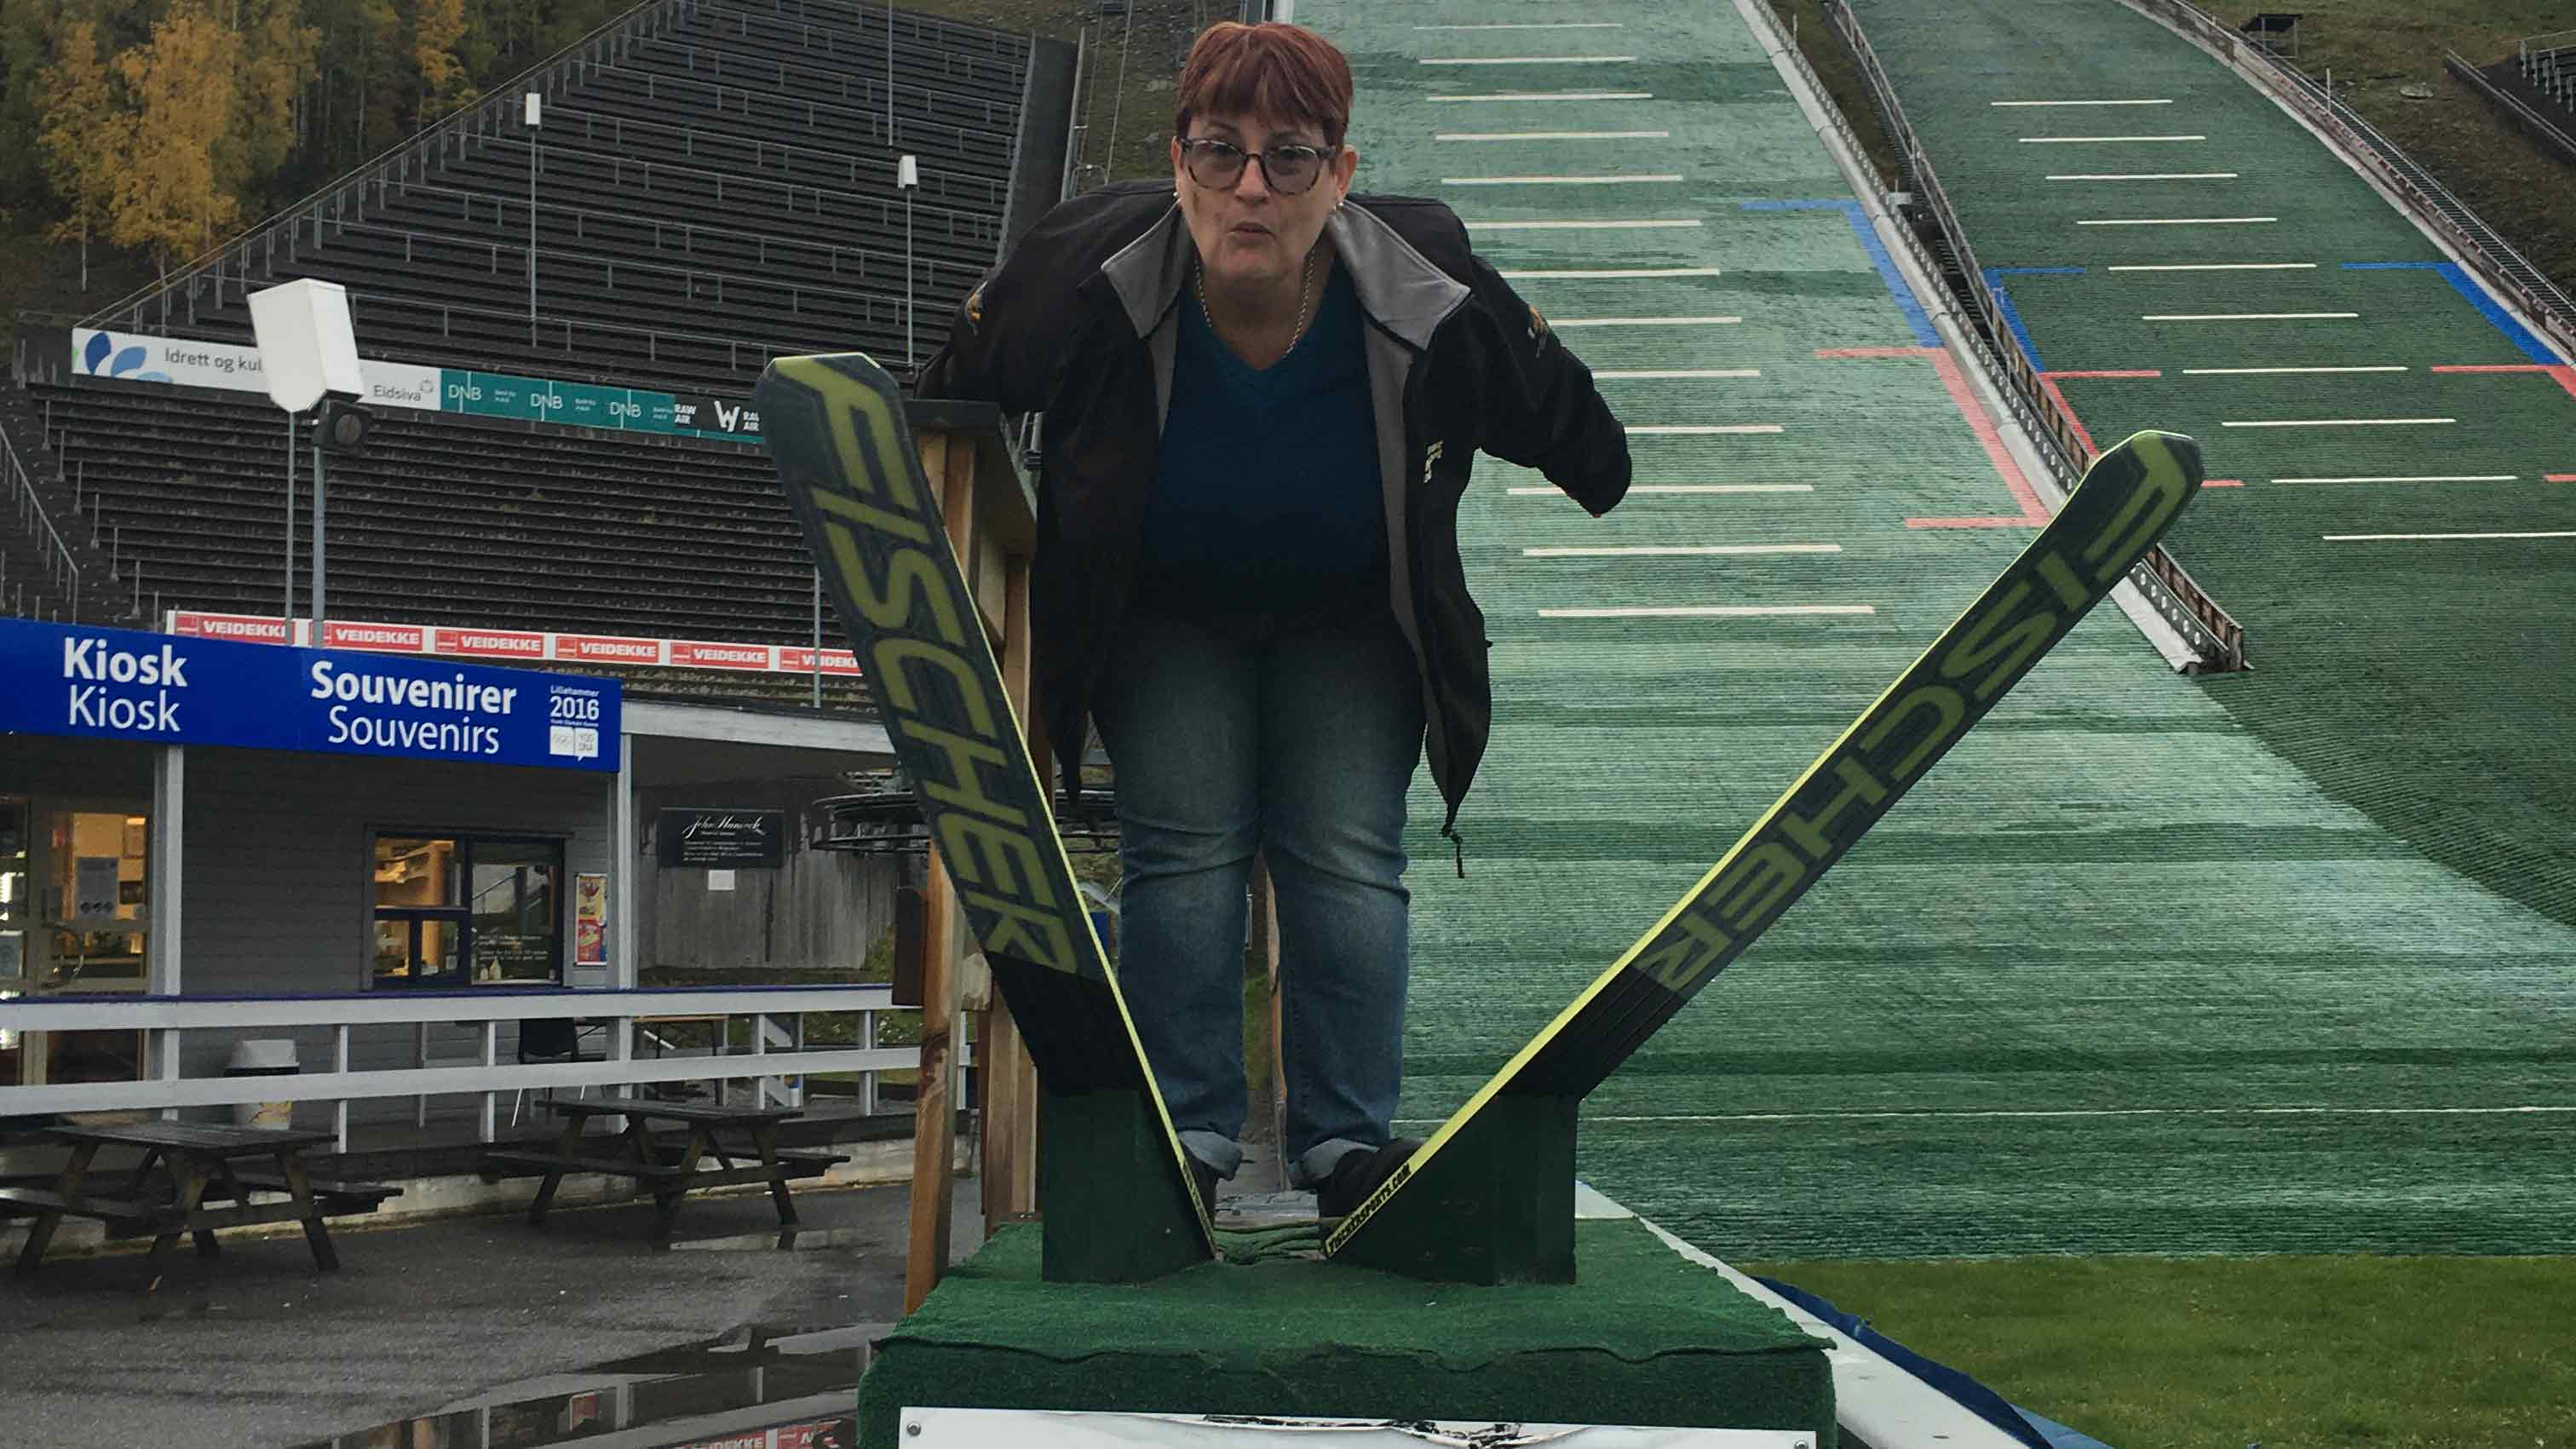 Pat went ski jumping at Lillehammer